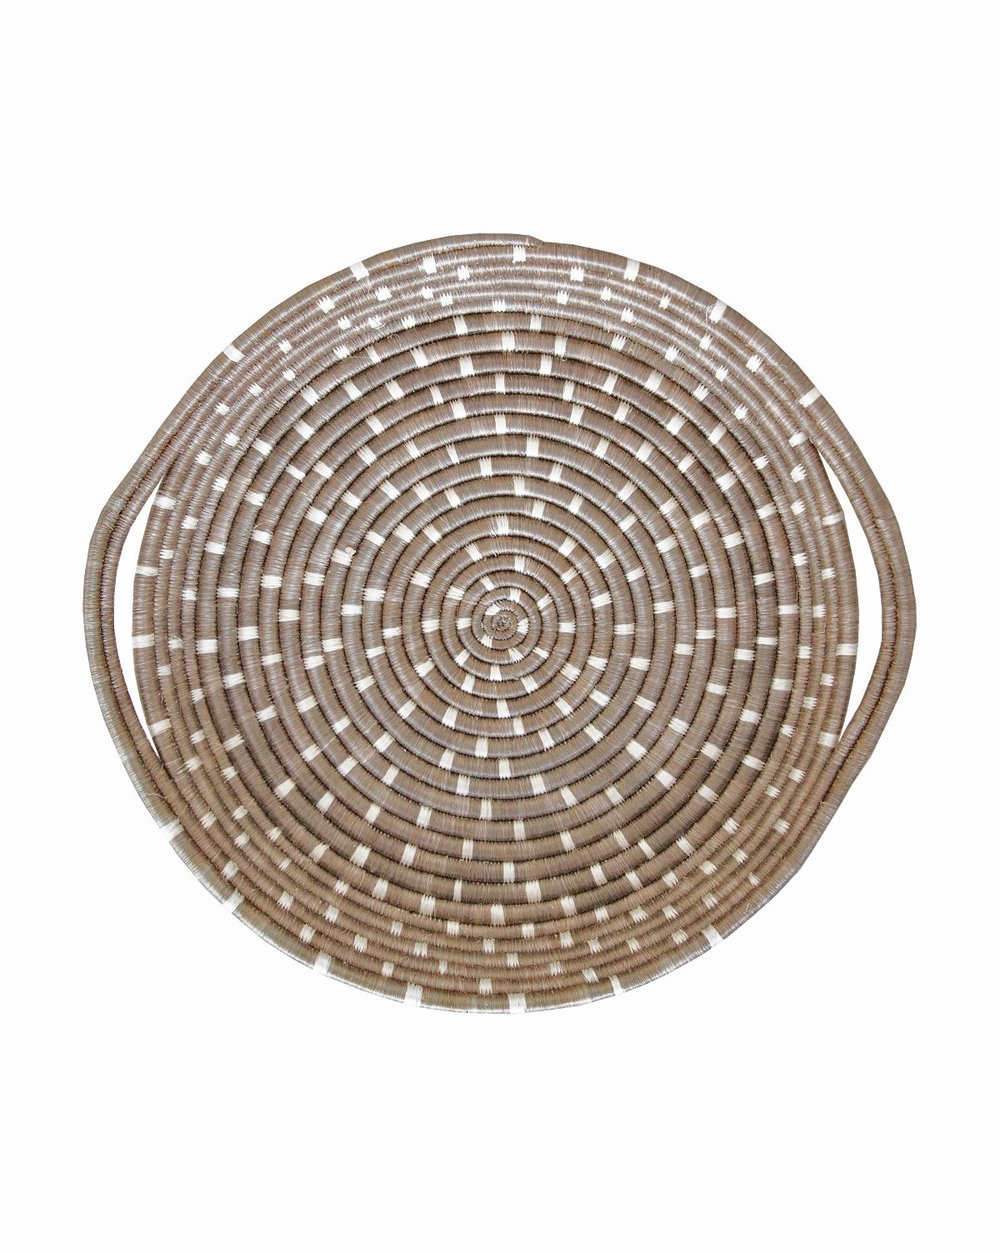 Taupe_Speckled_Tray_Overhead_1v2.jpg